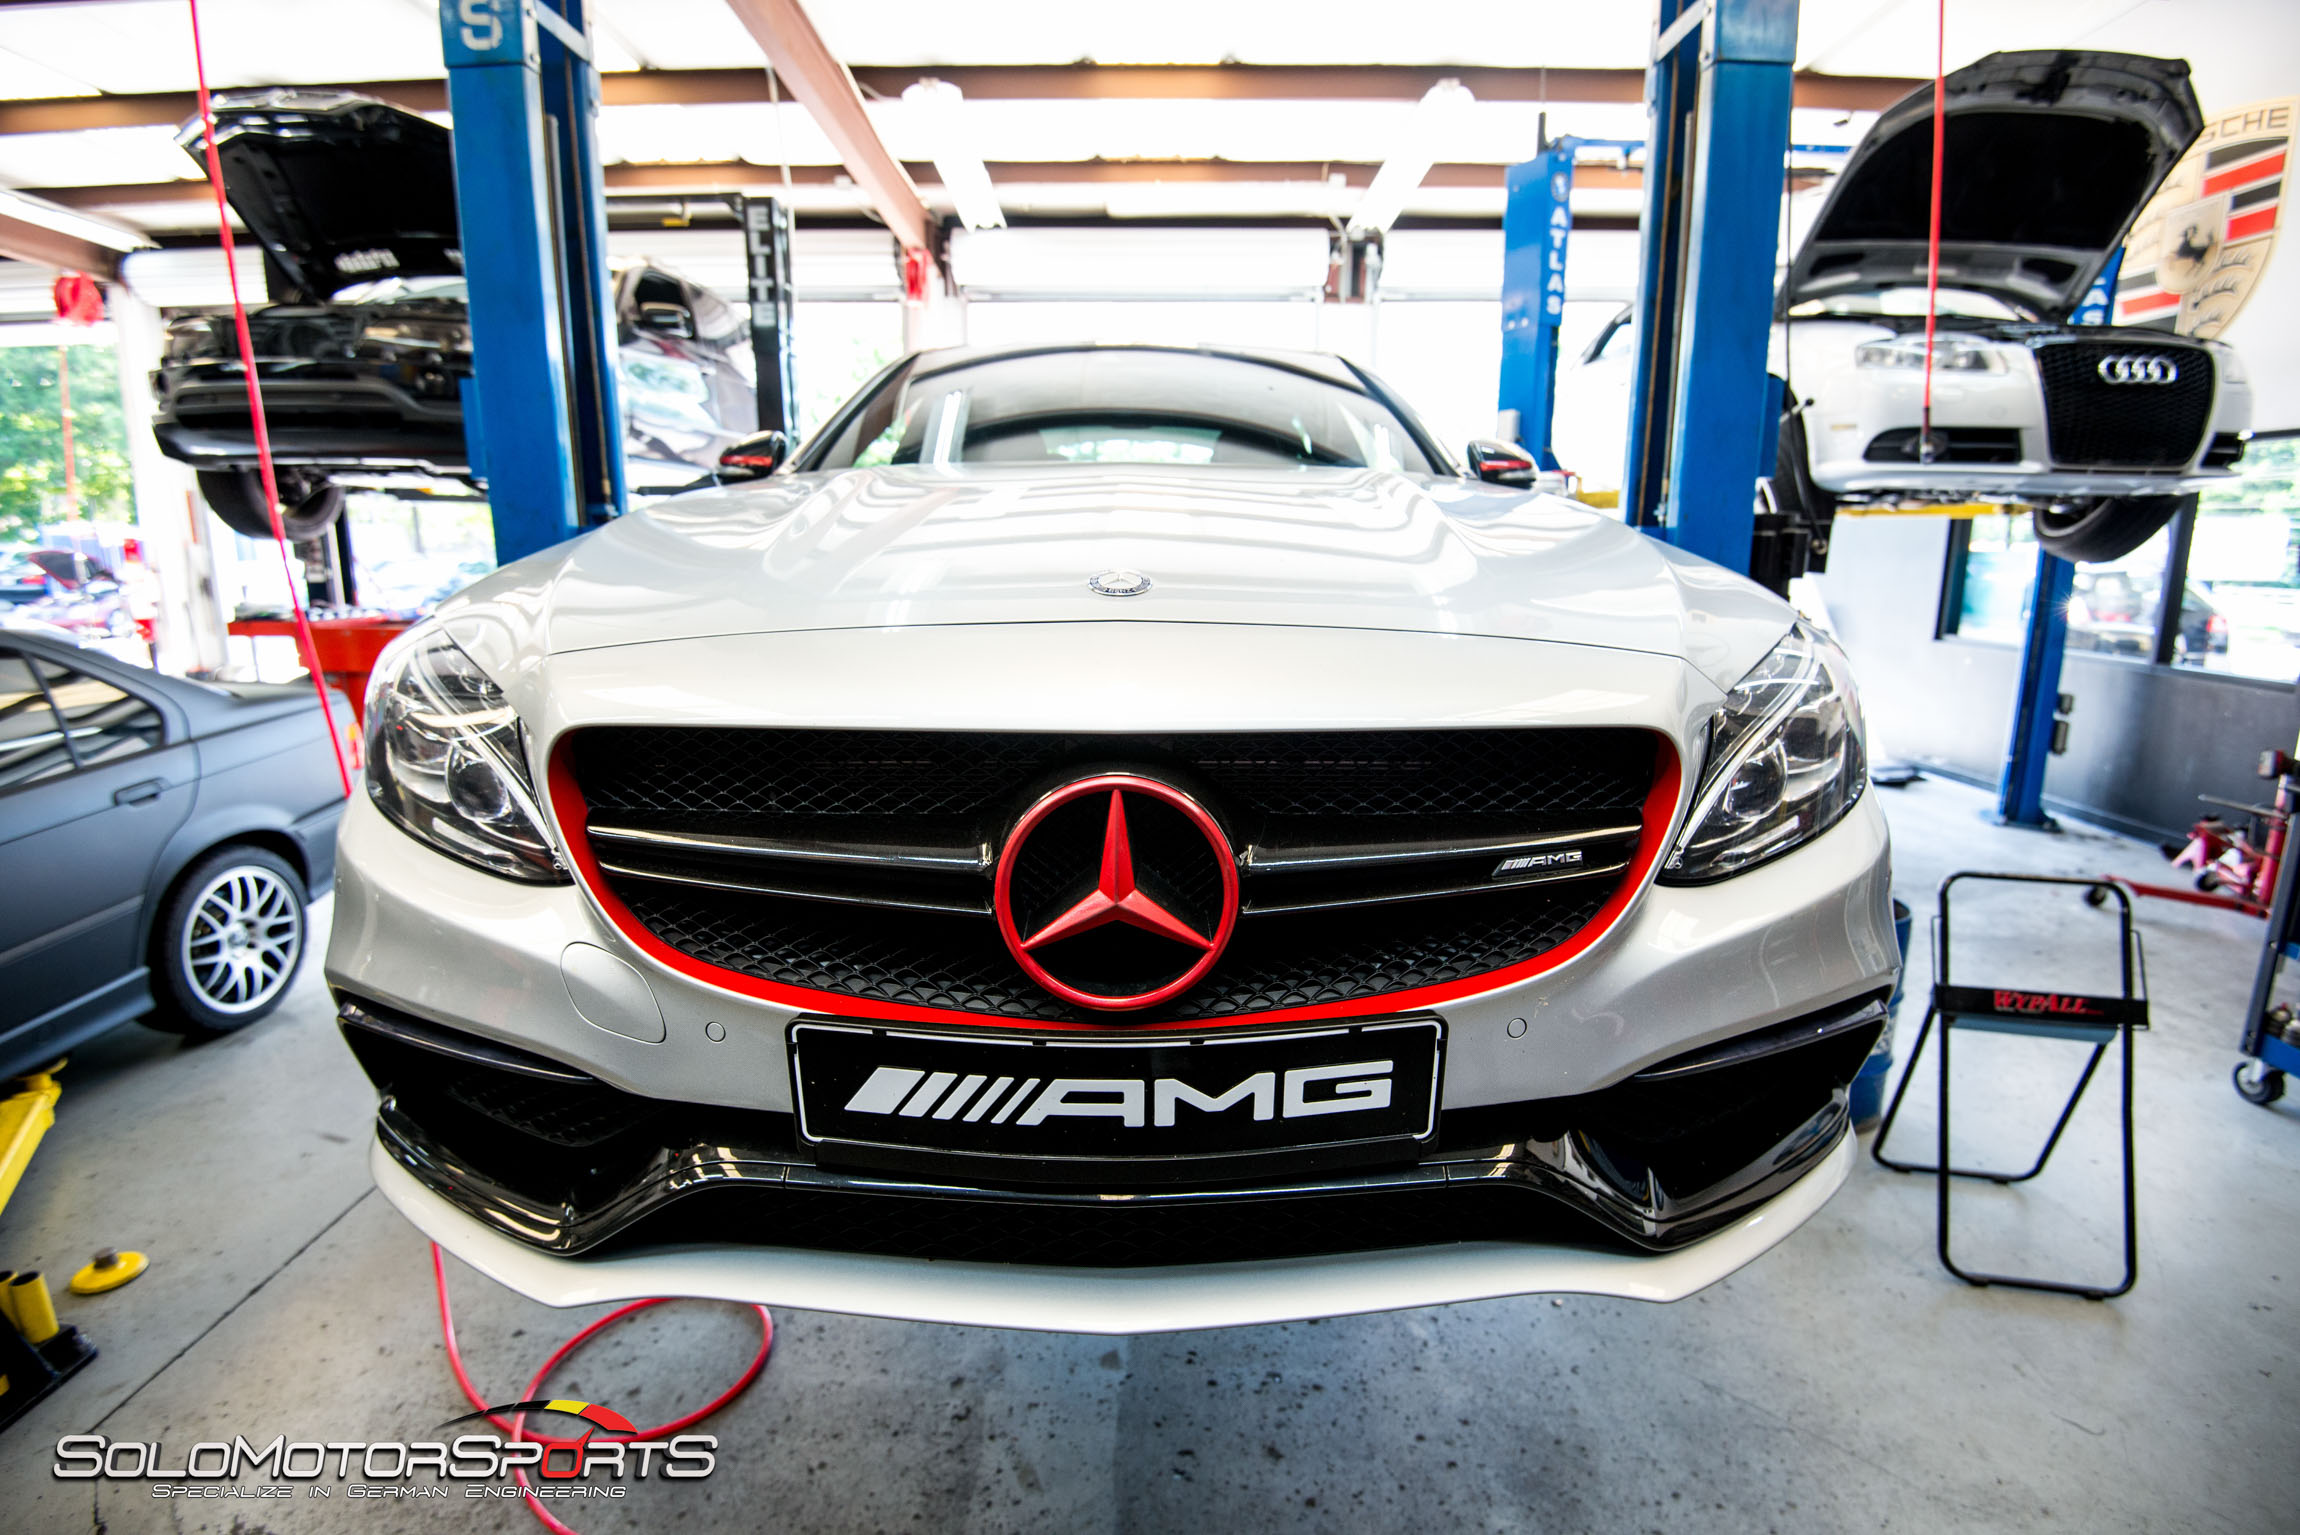 c63 amg downpipe and brake job